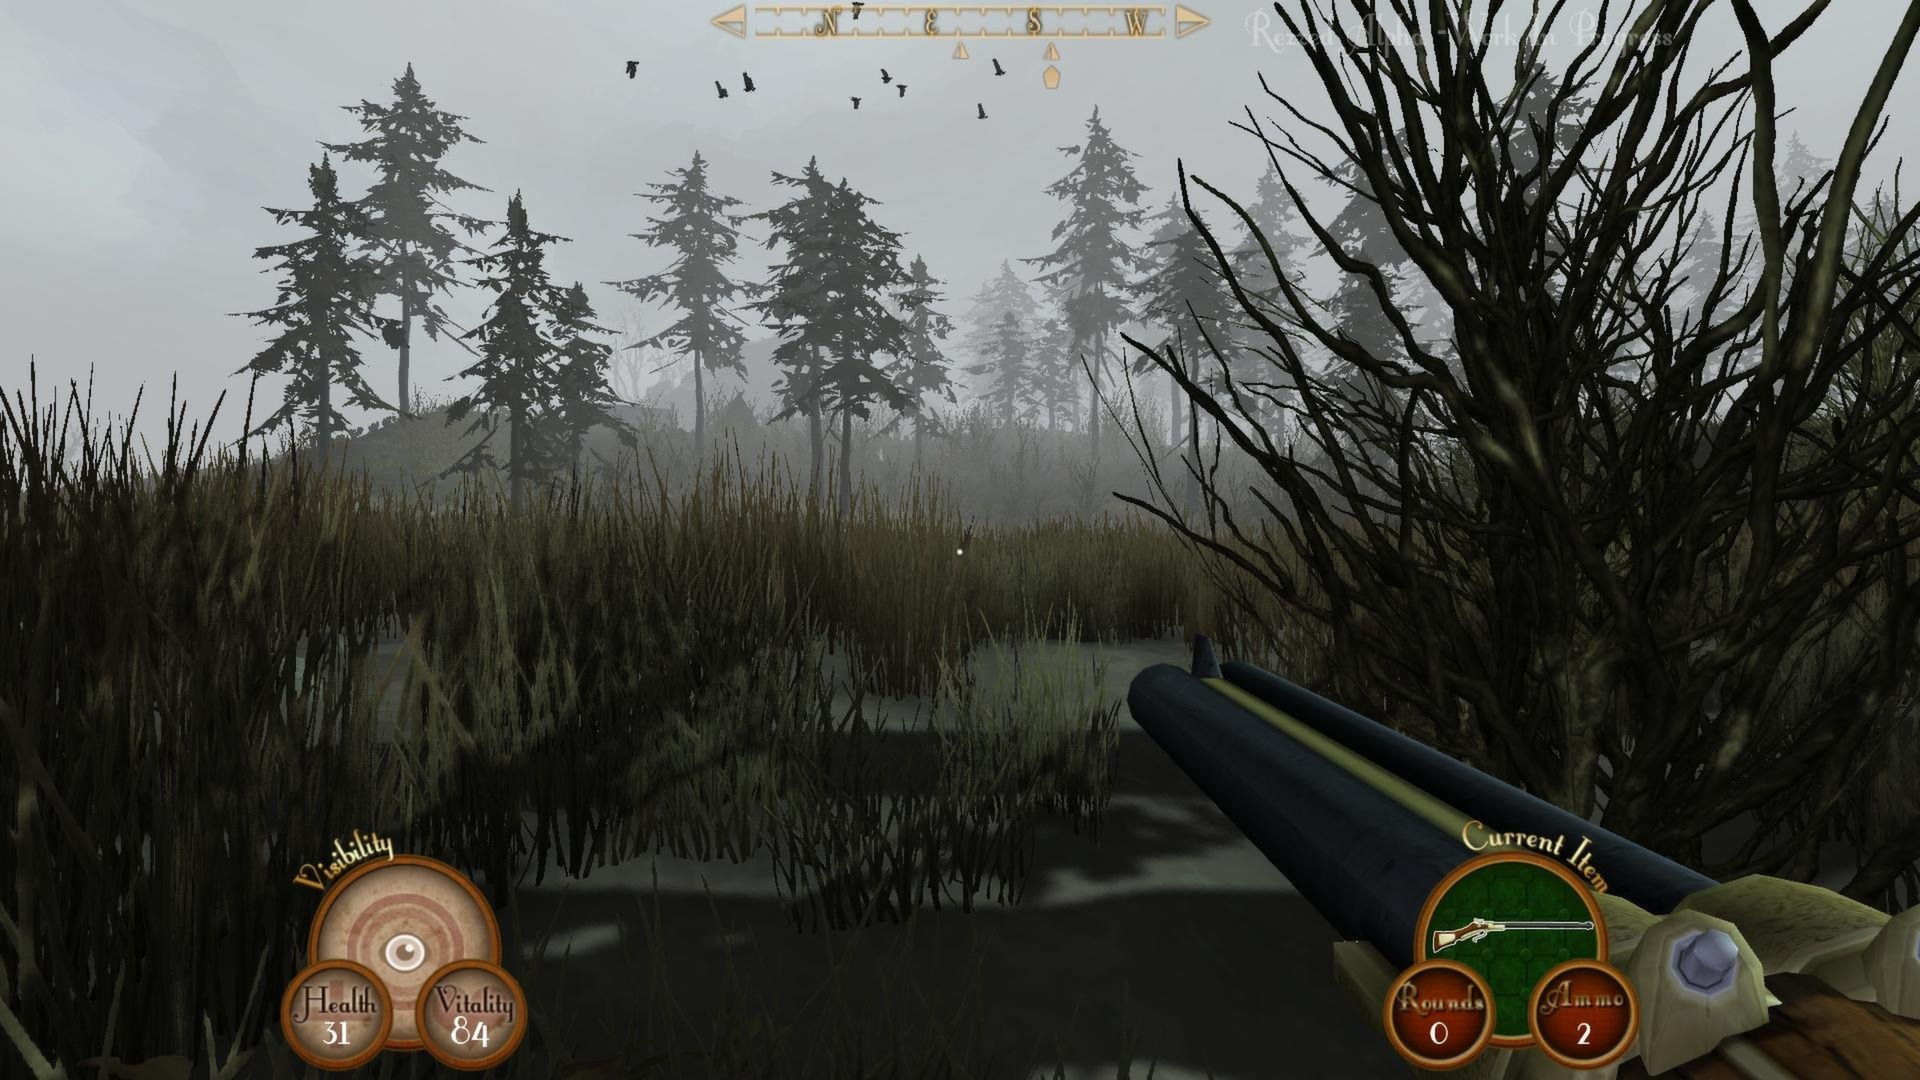 com.steam.242880-screenshot